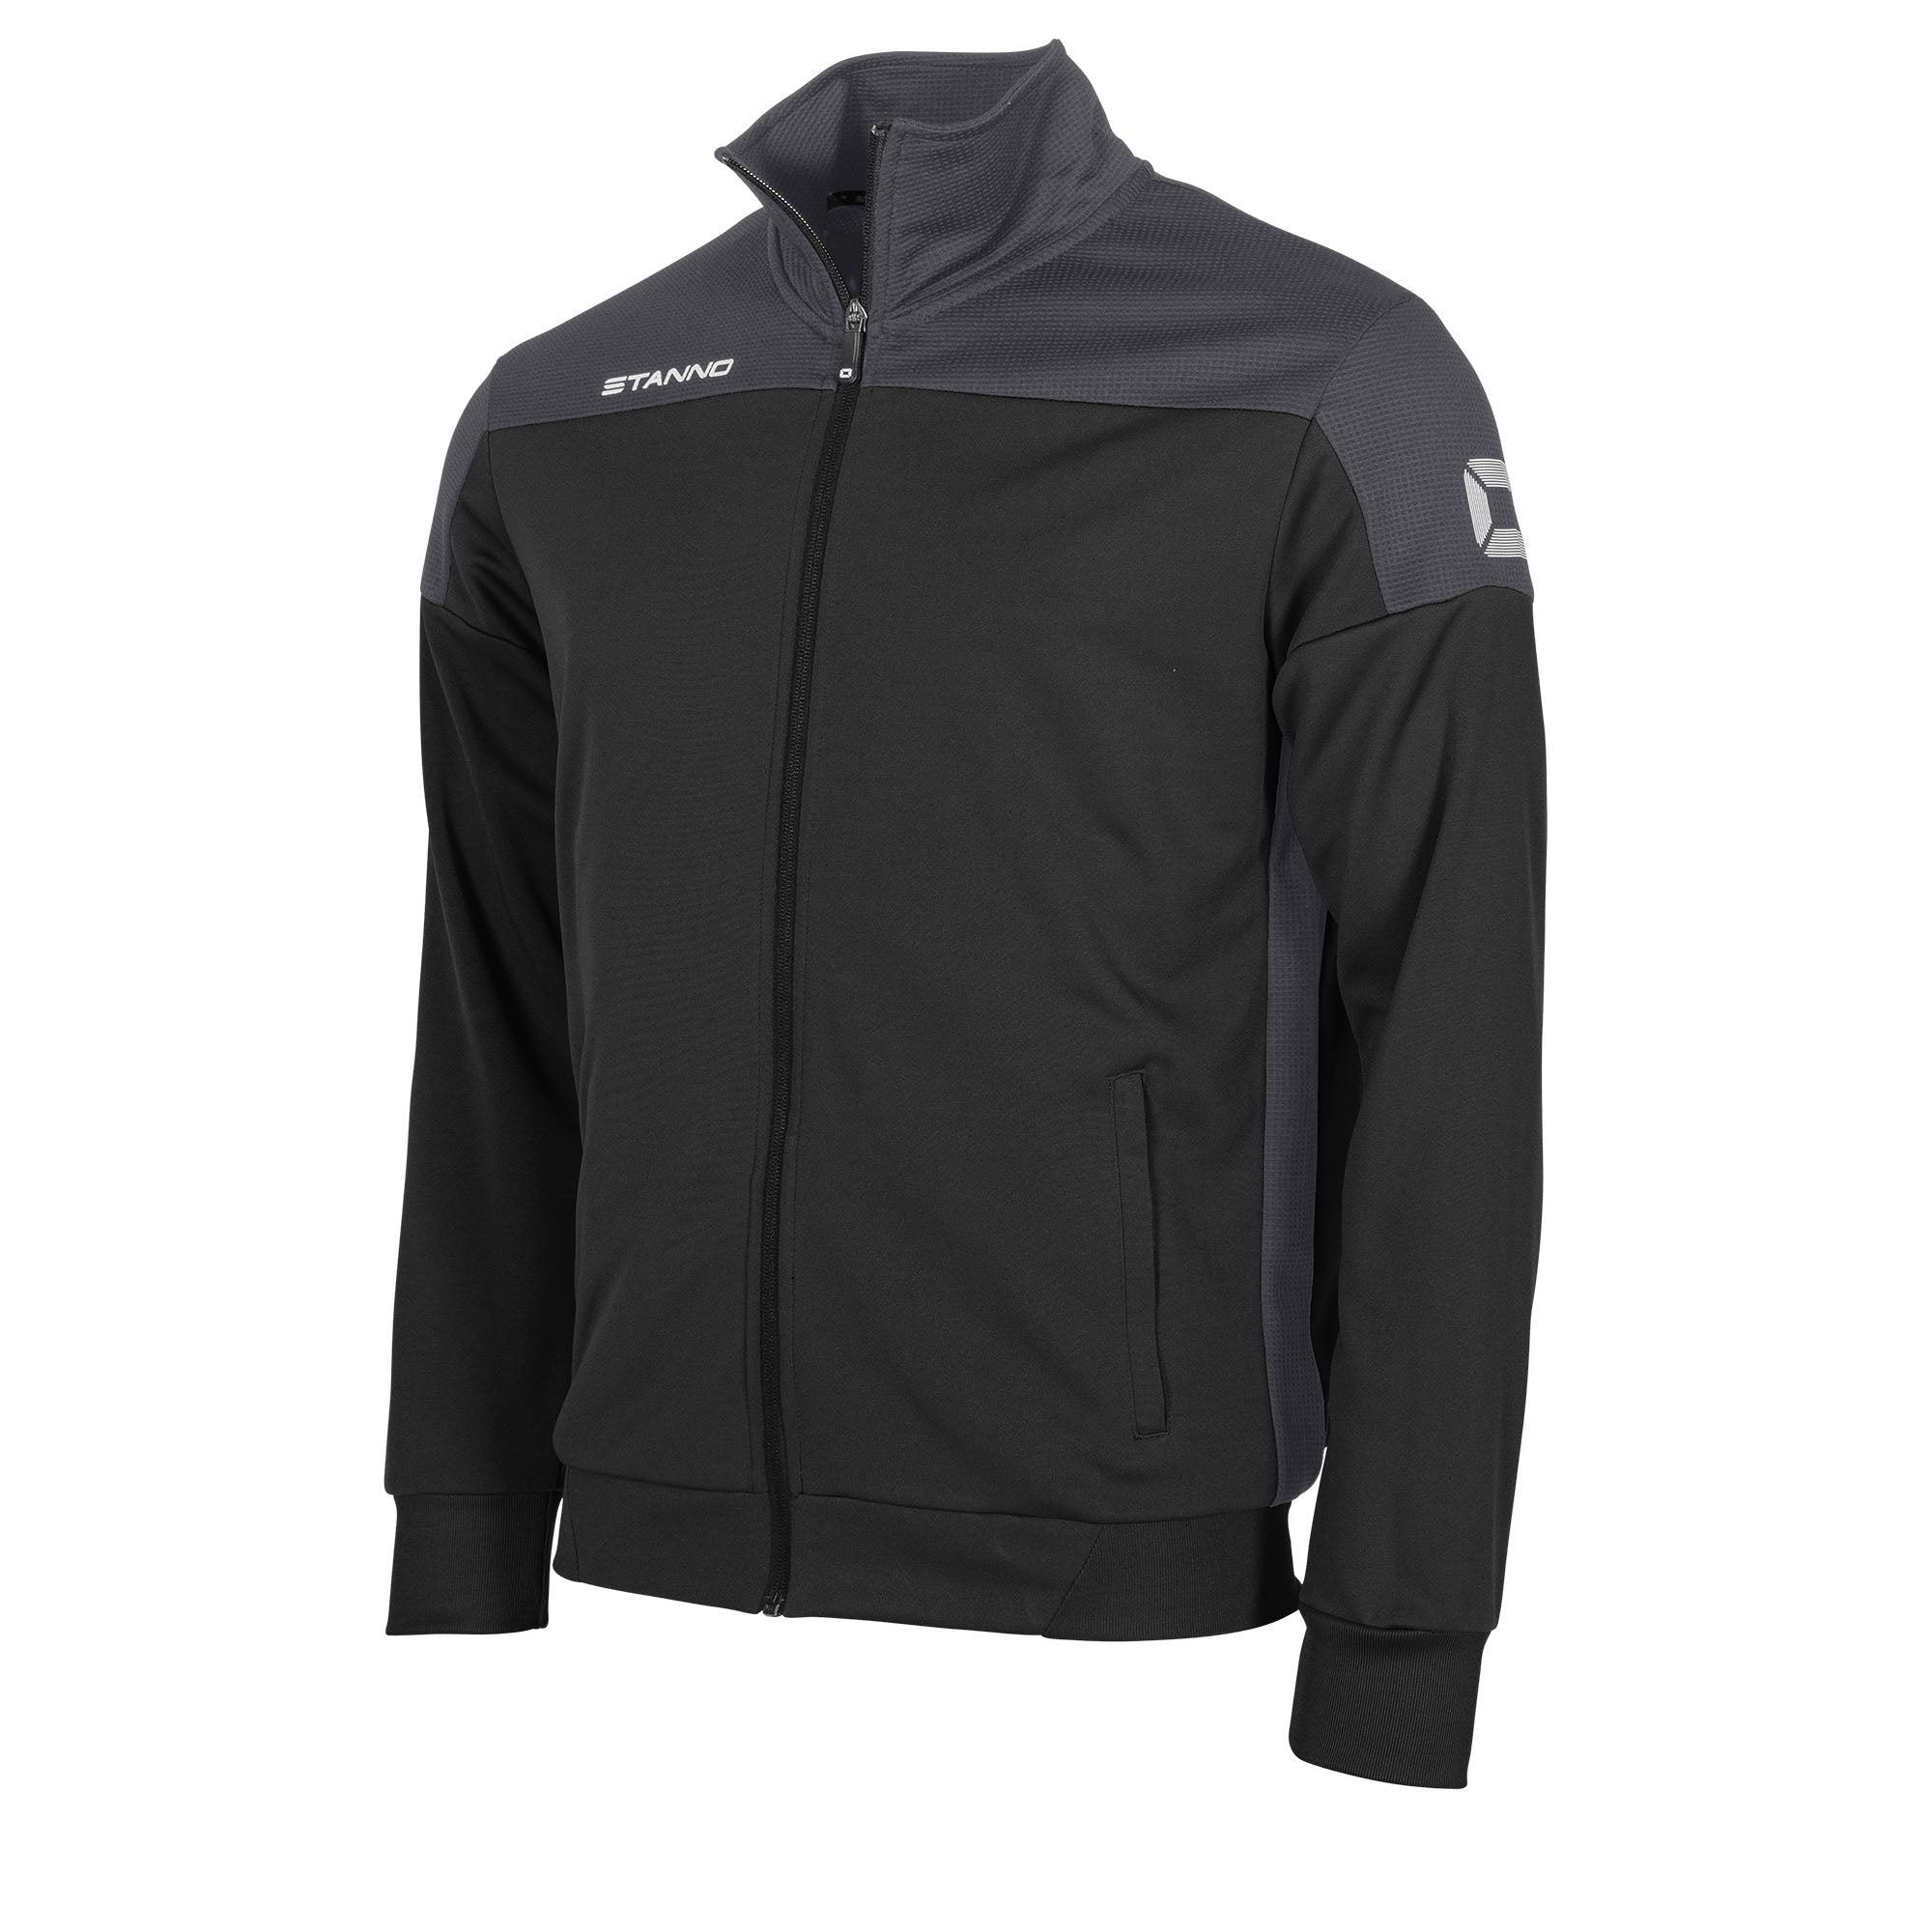 Stanno Pride TTS Jacket full zip in black with anthracite contrast shoulders and side panel